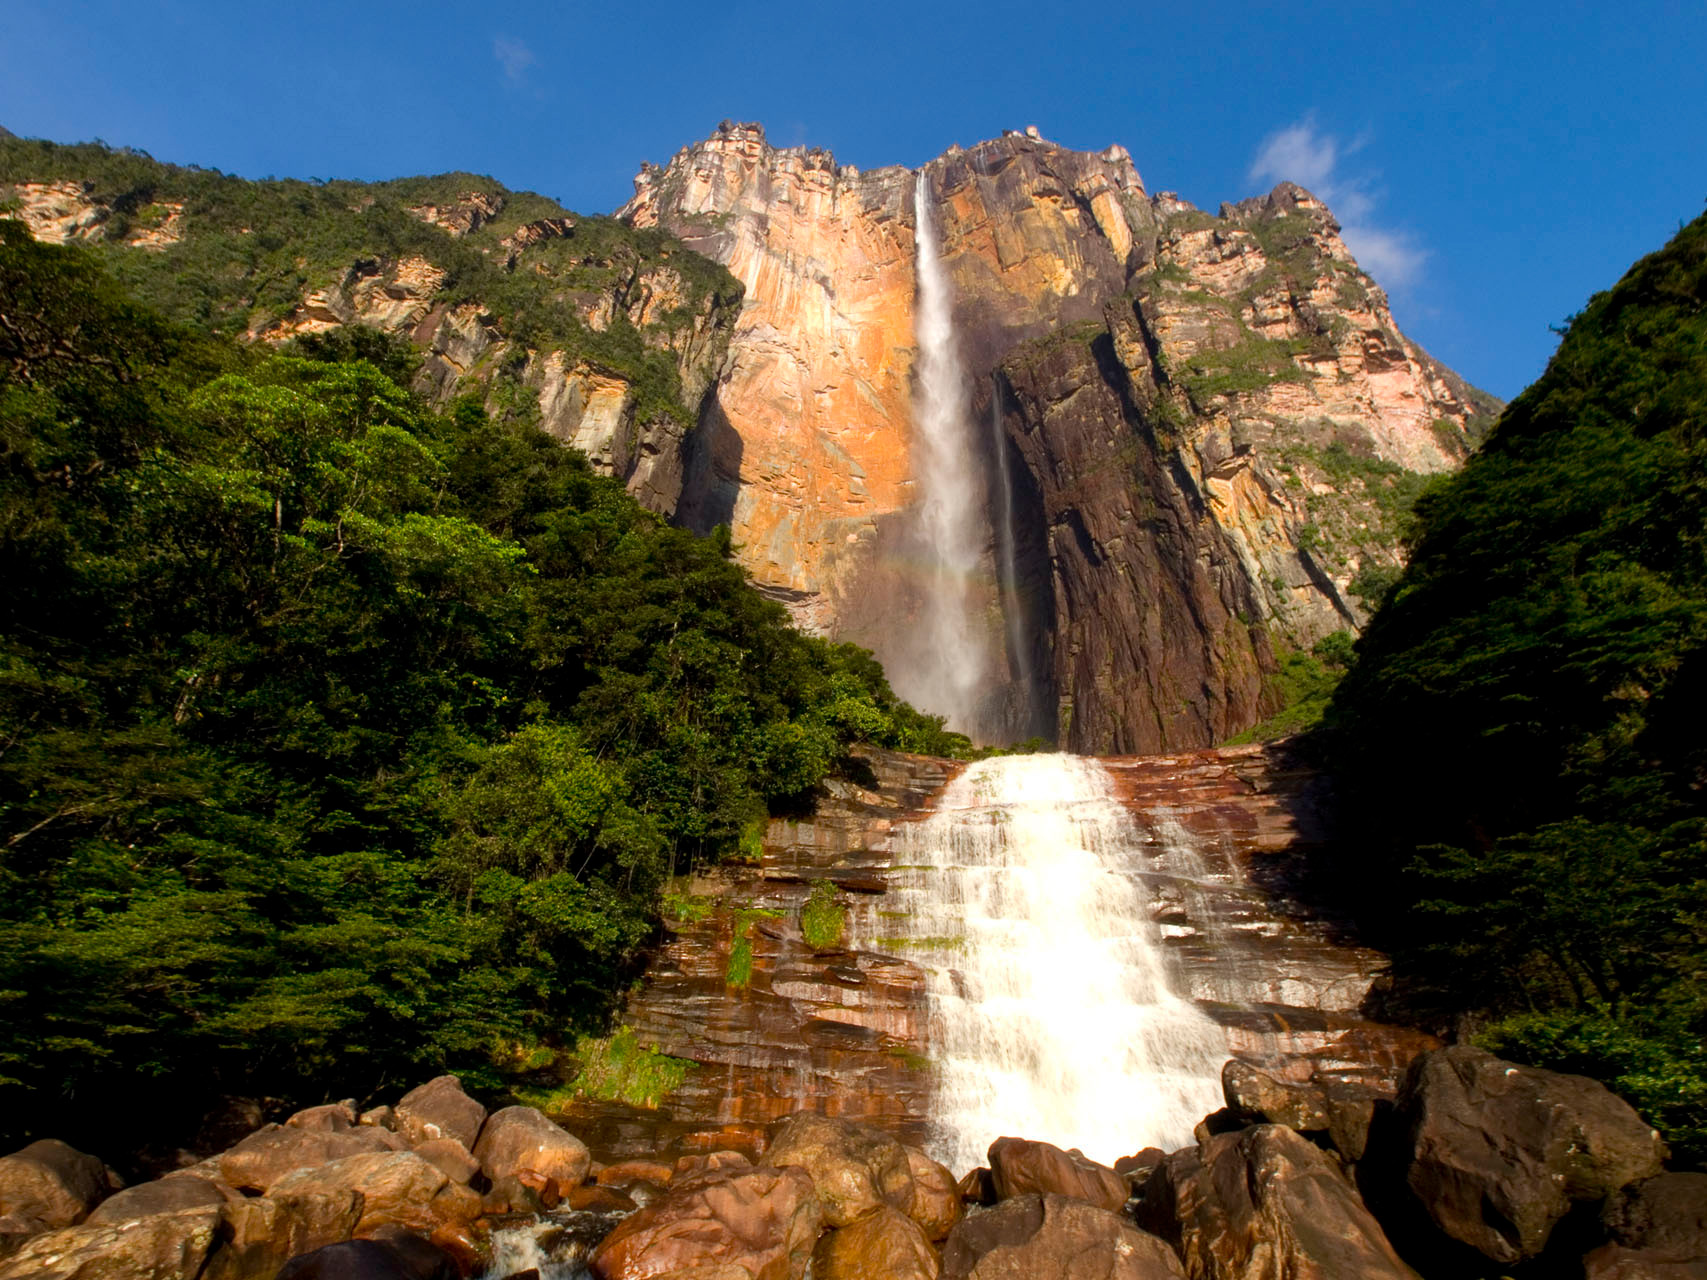 Canaima National Park: world's highest uninterrupted waterfall, with a height of 979 m and a plunge of 807 m [Venezuela, 2009]